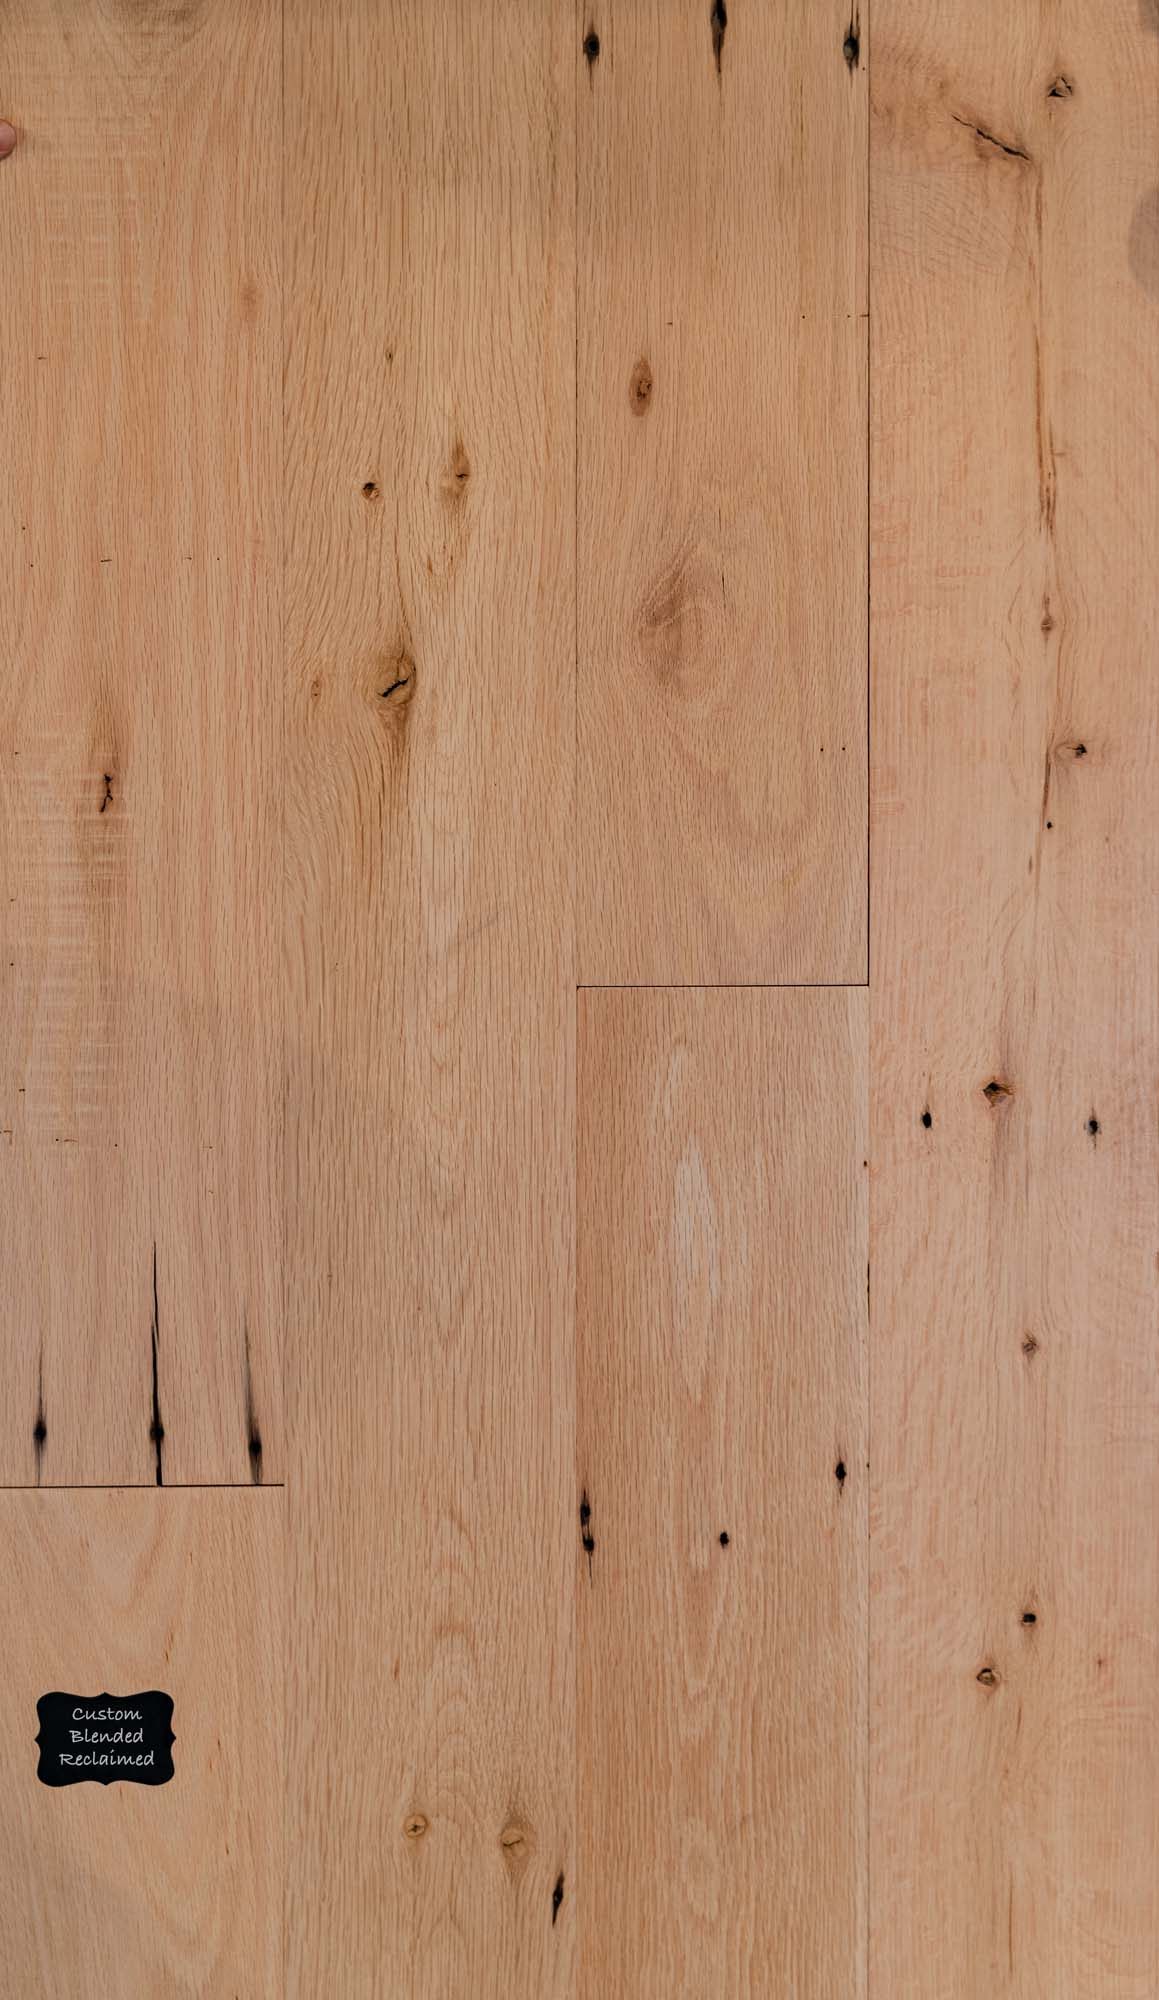 Custom Blended Reclaimed Wood Flooring. Our Custom Blends are created with the customer and manufacturer getting together and creating exactly what the customer wants.